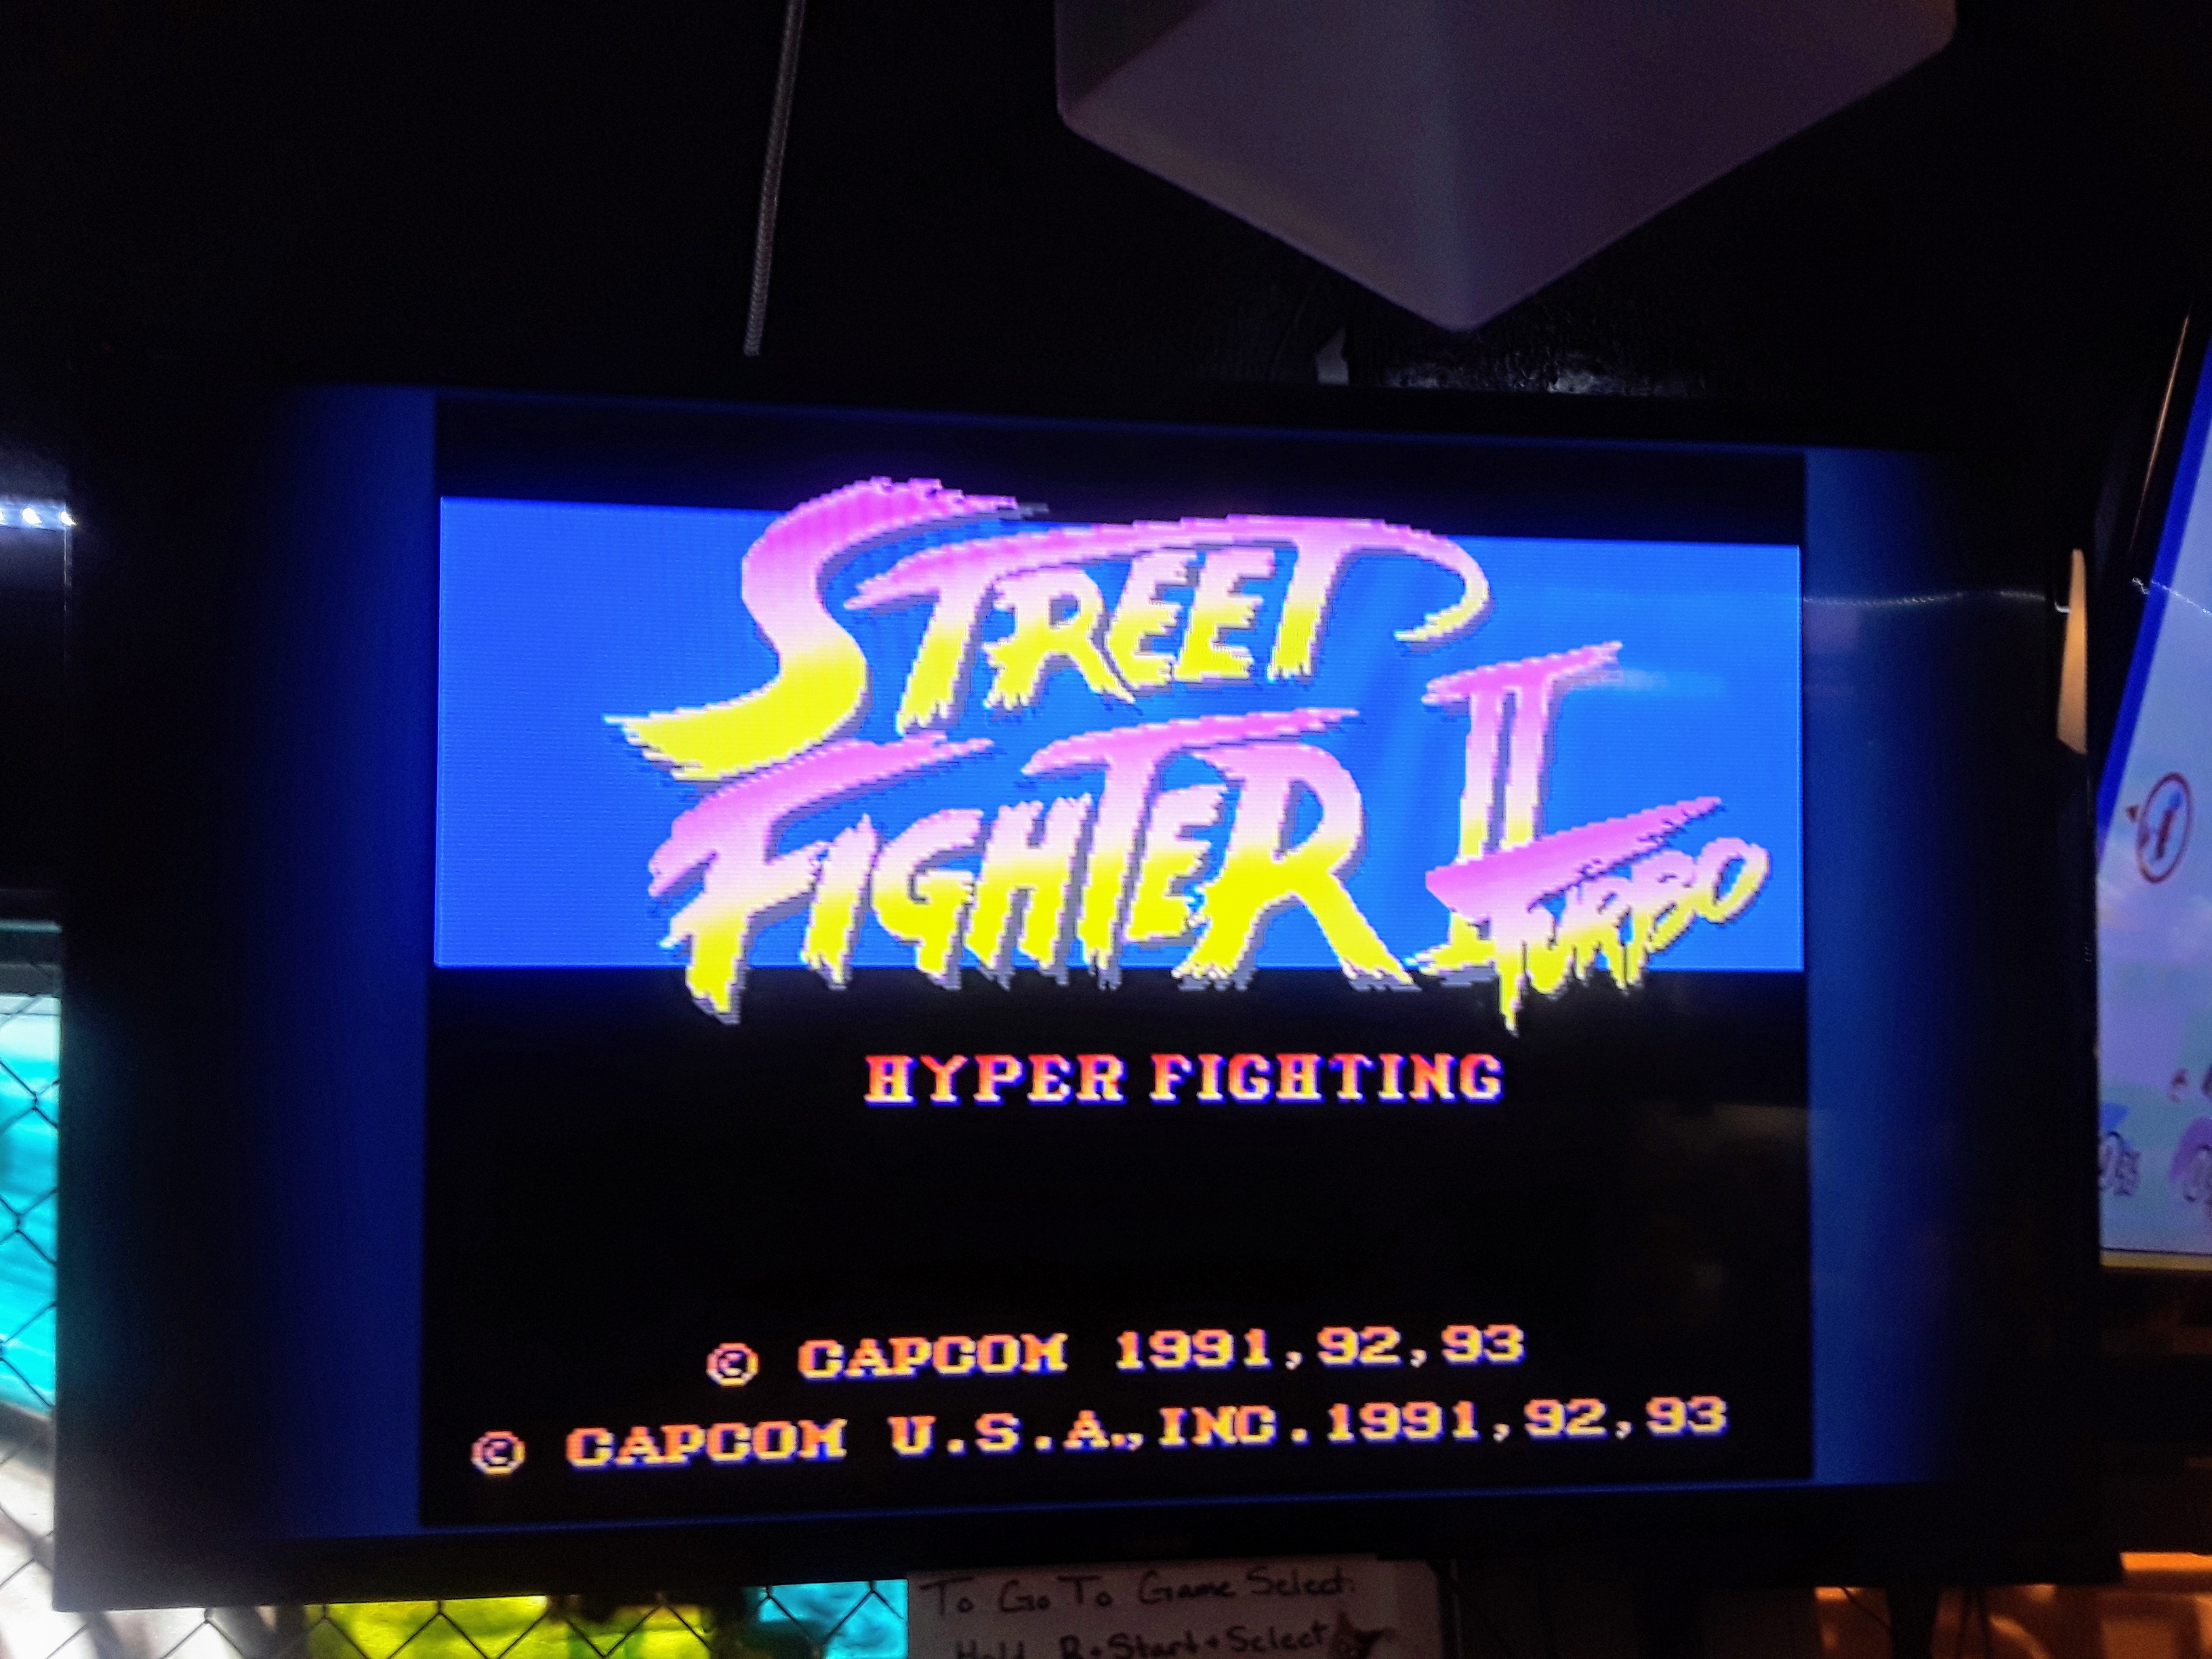 JML101582: Street Fighter II Turbo: Hyper Fighting [Normal / Difficulty 1] (SNES/Super Famicom Emulated) 517,680 points on 2018-10-06 17:42:59